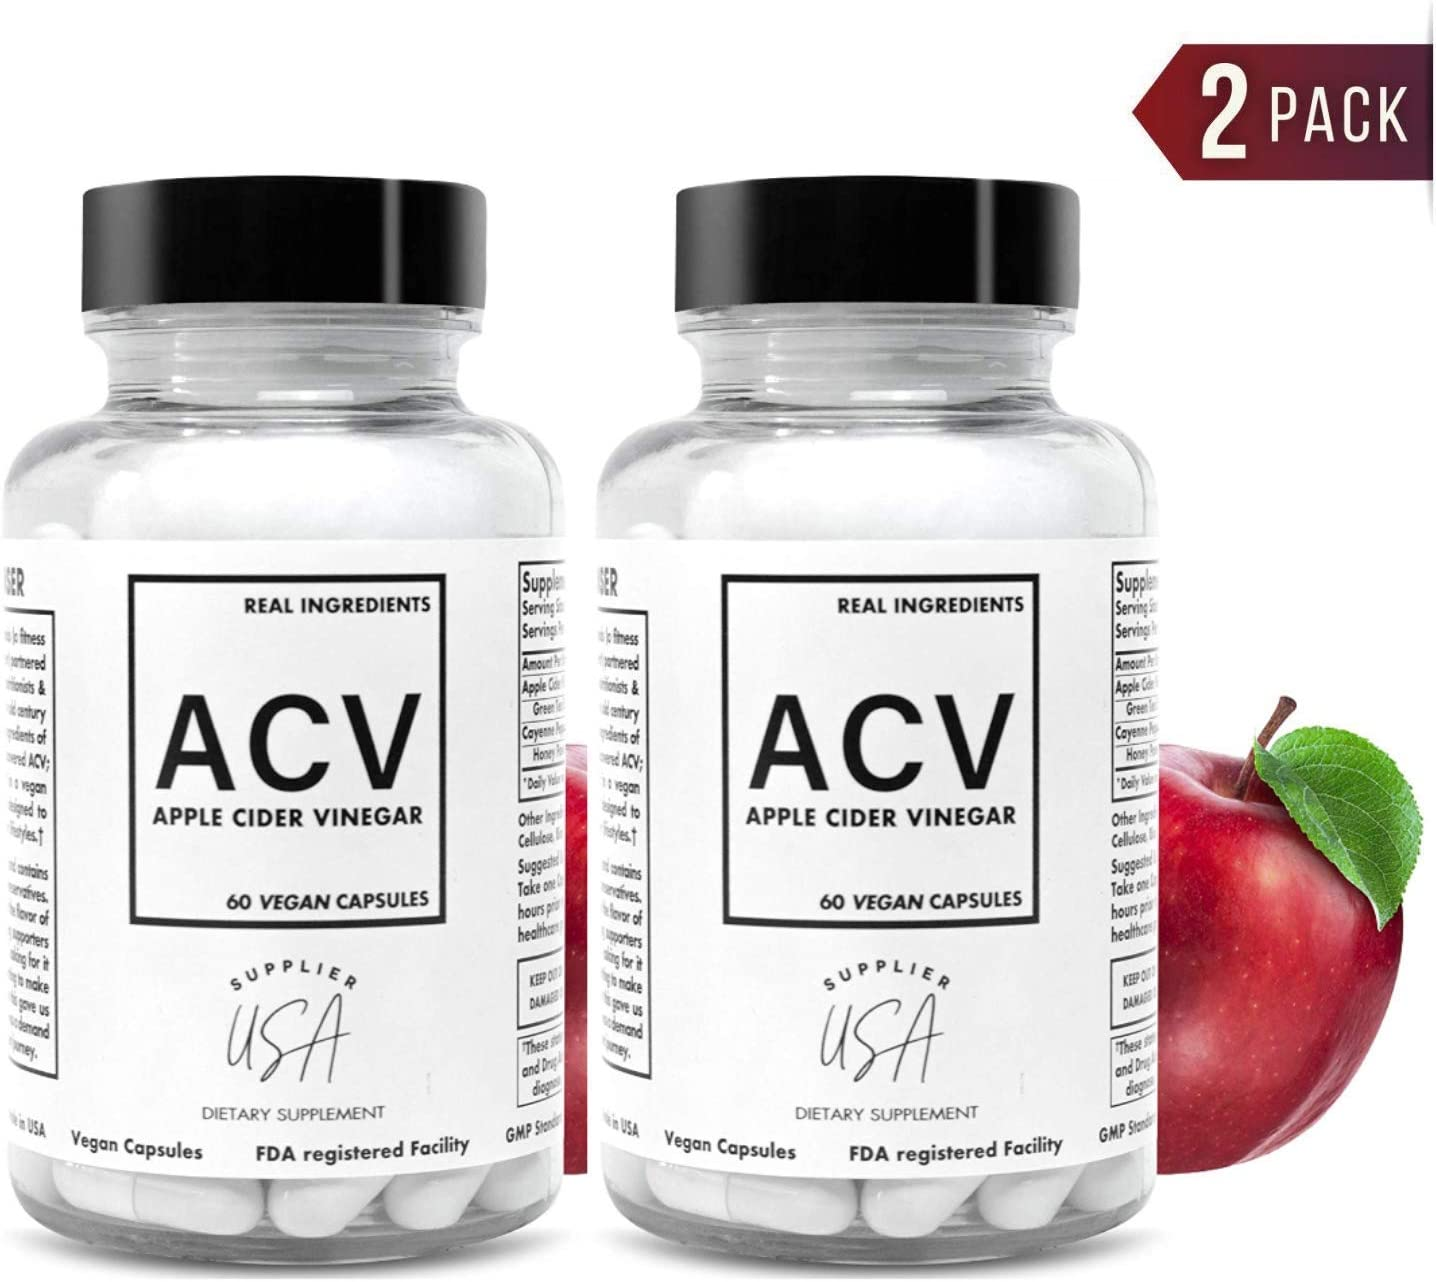 ACV Apple Cider Vinegar Capsules – Natural Powerful 500mg Premium-Non-GMO Vegetarian Cider Capsules, Made in USA FDA Facility – 2 Pack 120 Pills